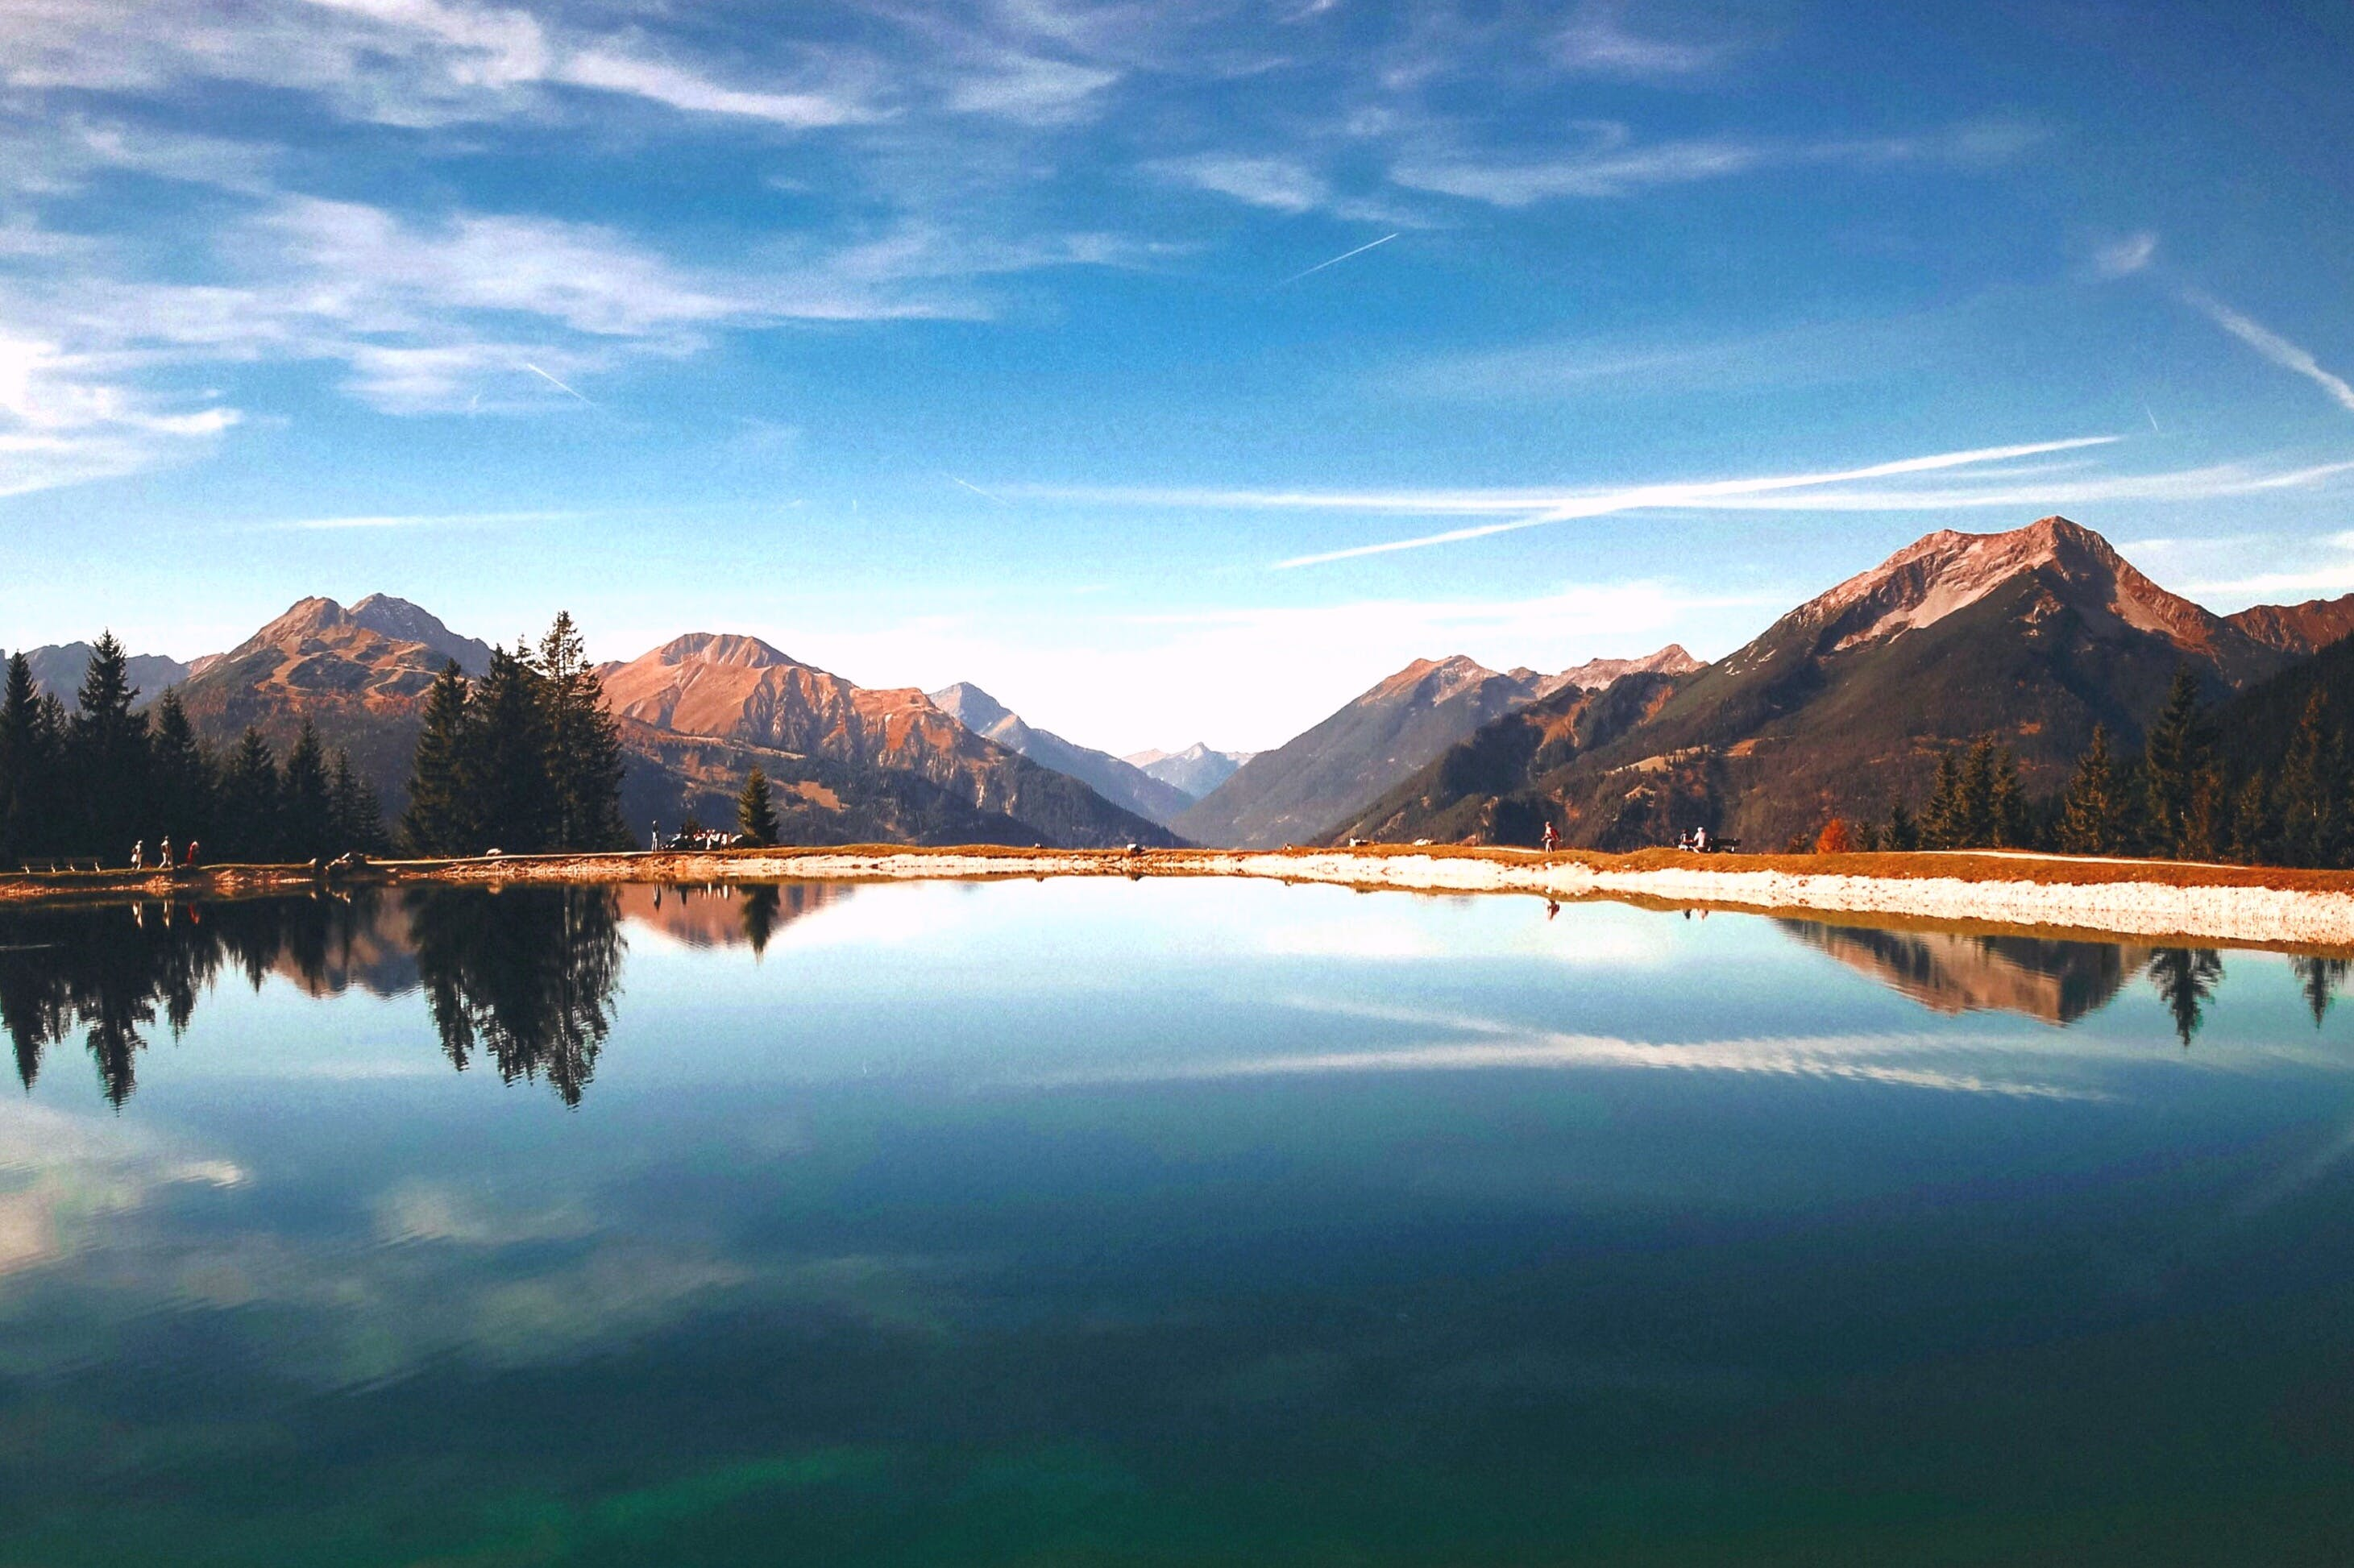 Landscape Photography of Brown Mountains Surrounding Lake